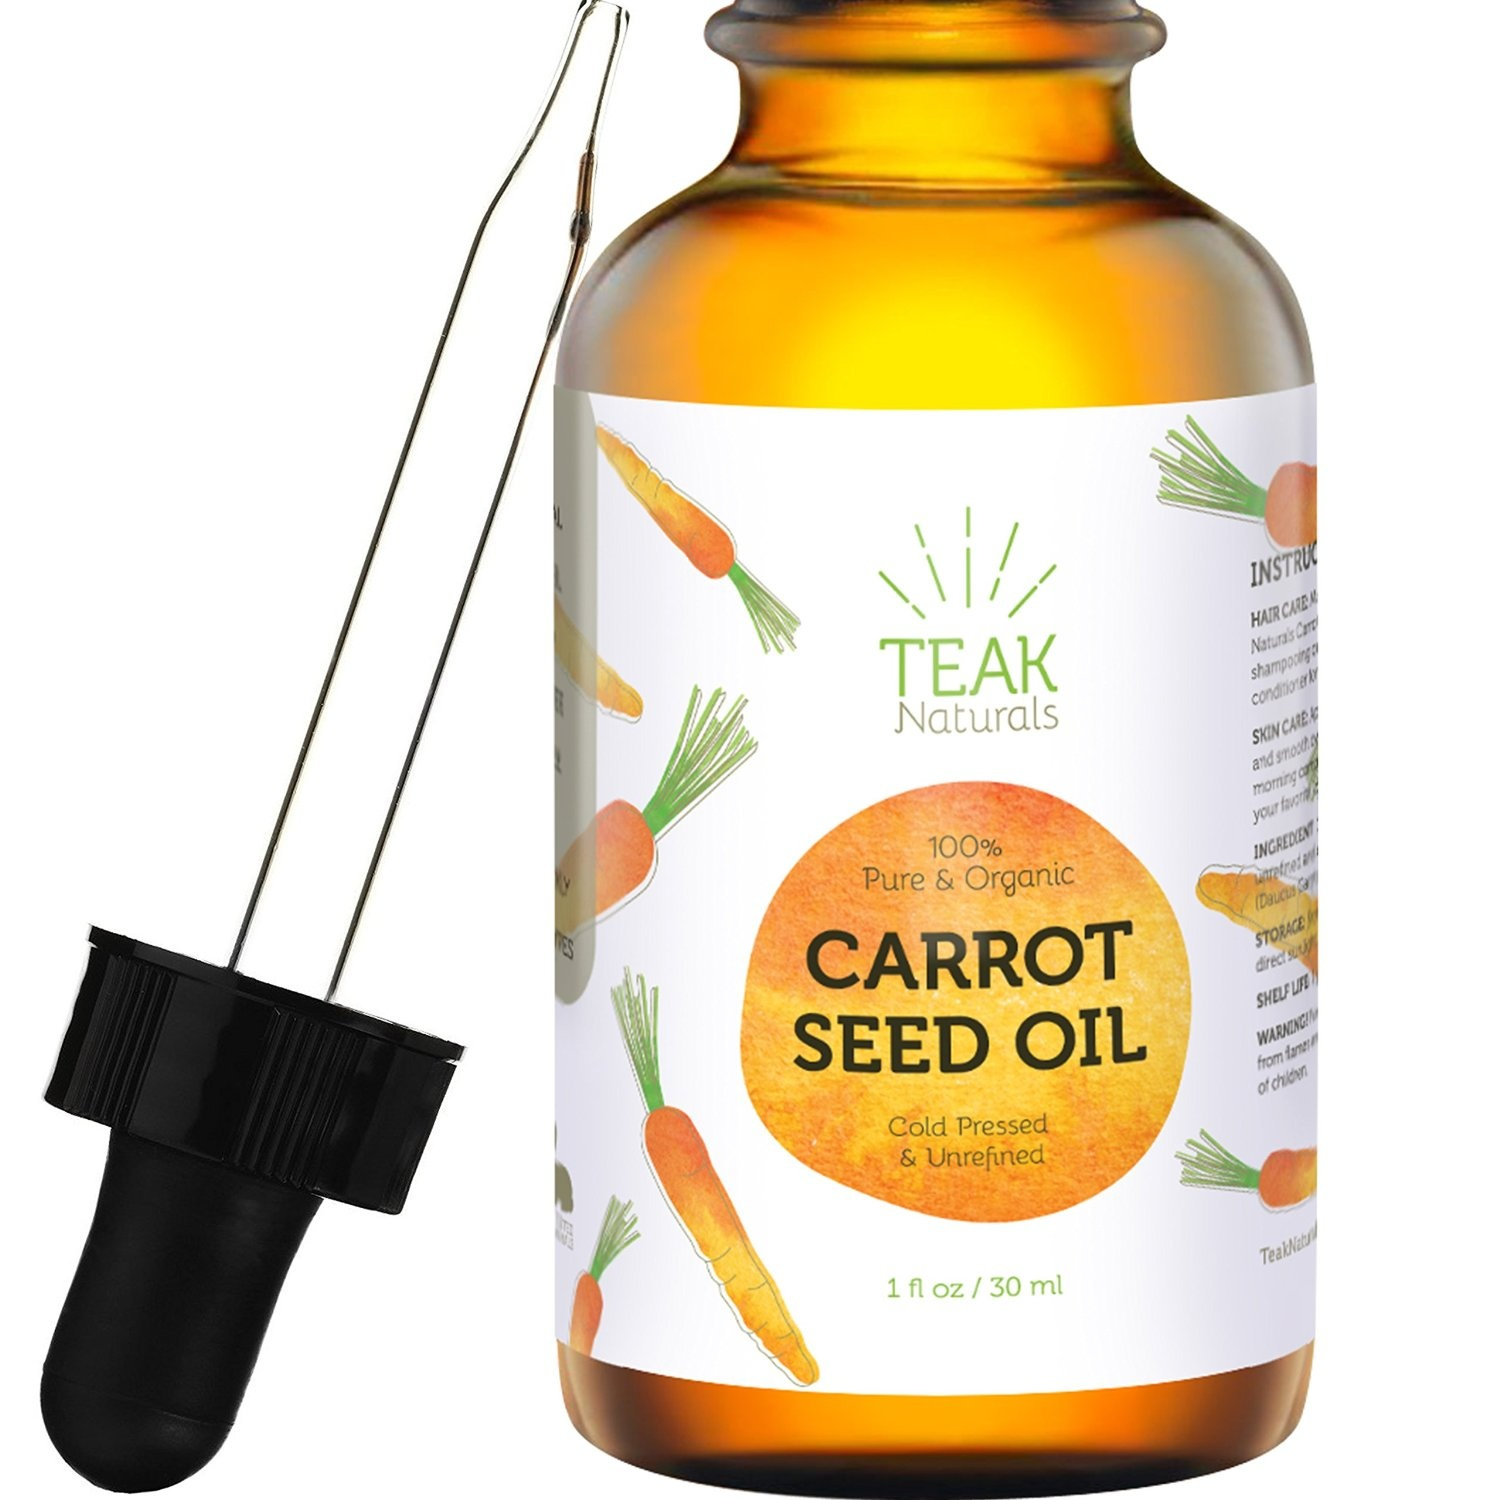 a0f9f14f8807 CARROT SEED OIL by Teak Naturals - 100% Organic Natural Cold Pressed &  Unrefined for Skin, Hair and Scalp Healing